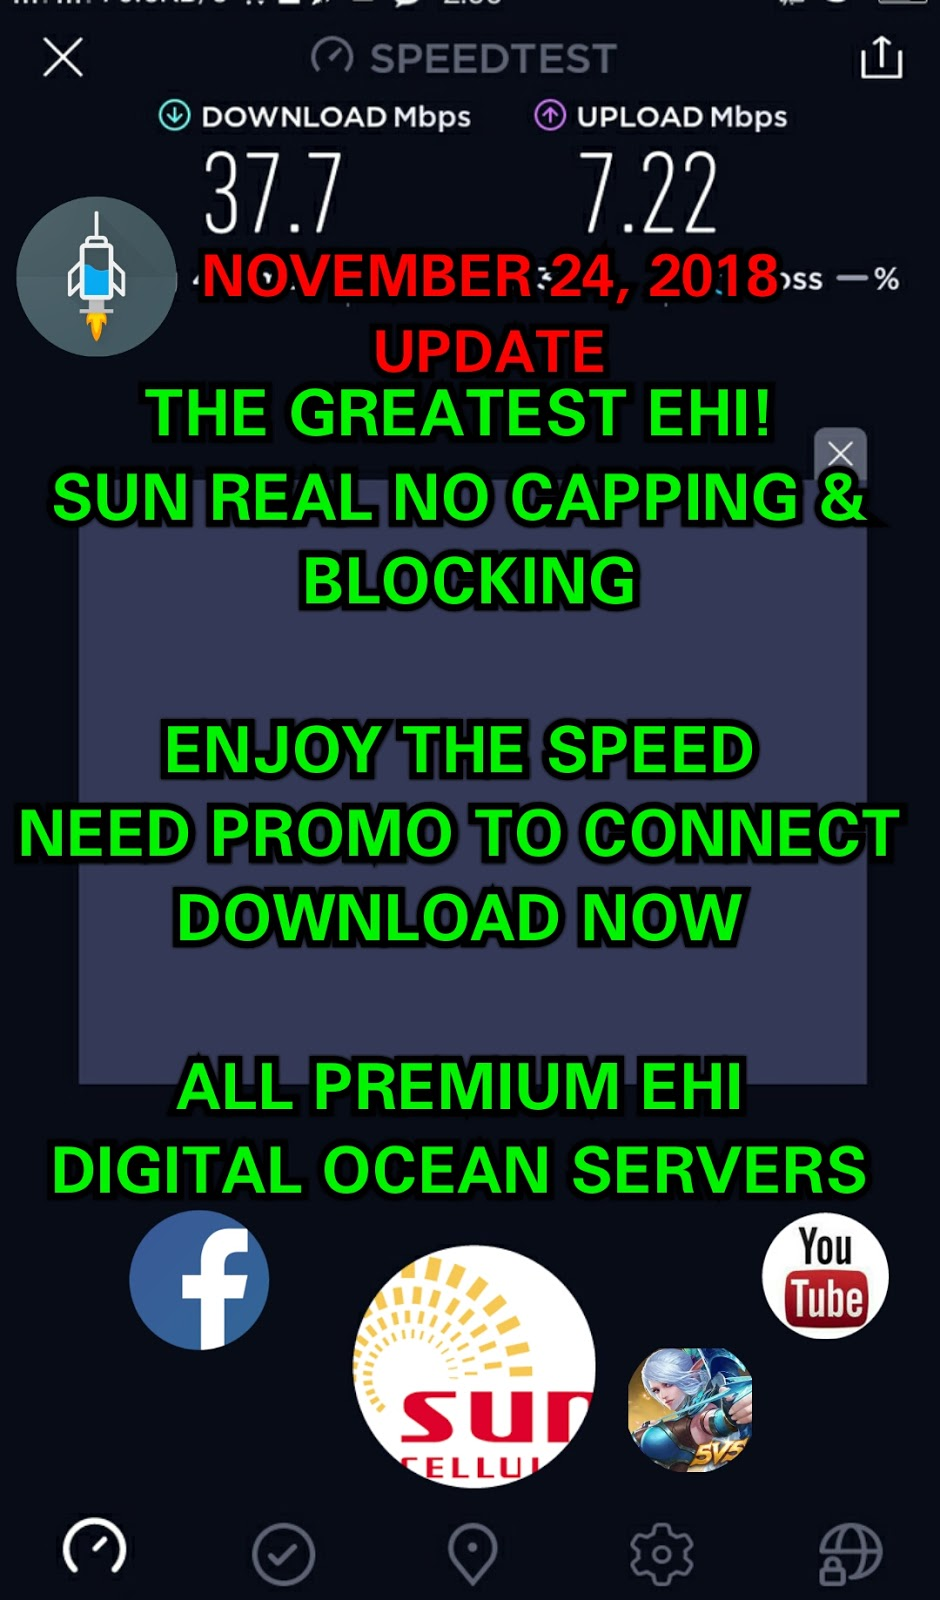 Sun Unlimited No Capping November 24, 2018 Ehi Update